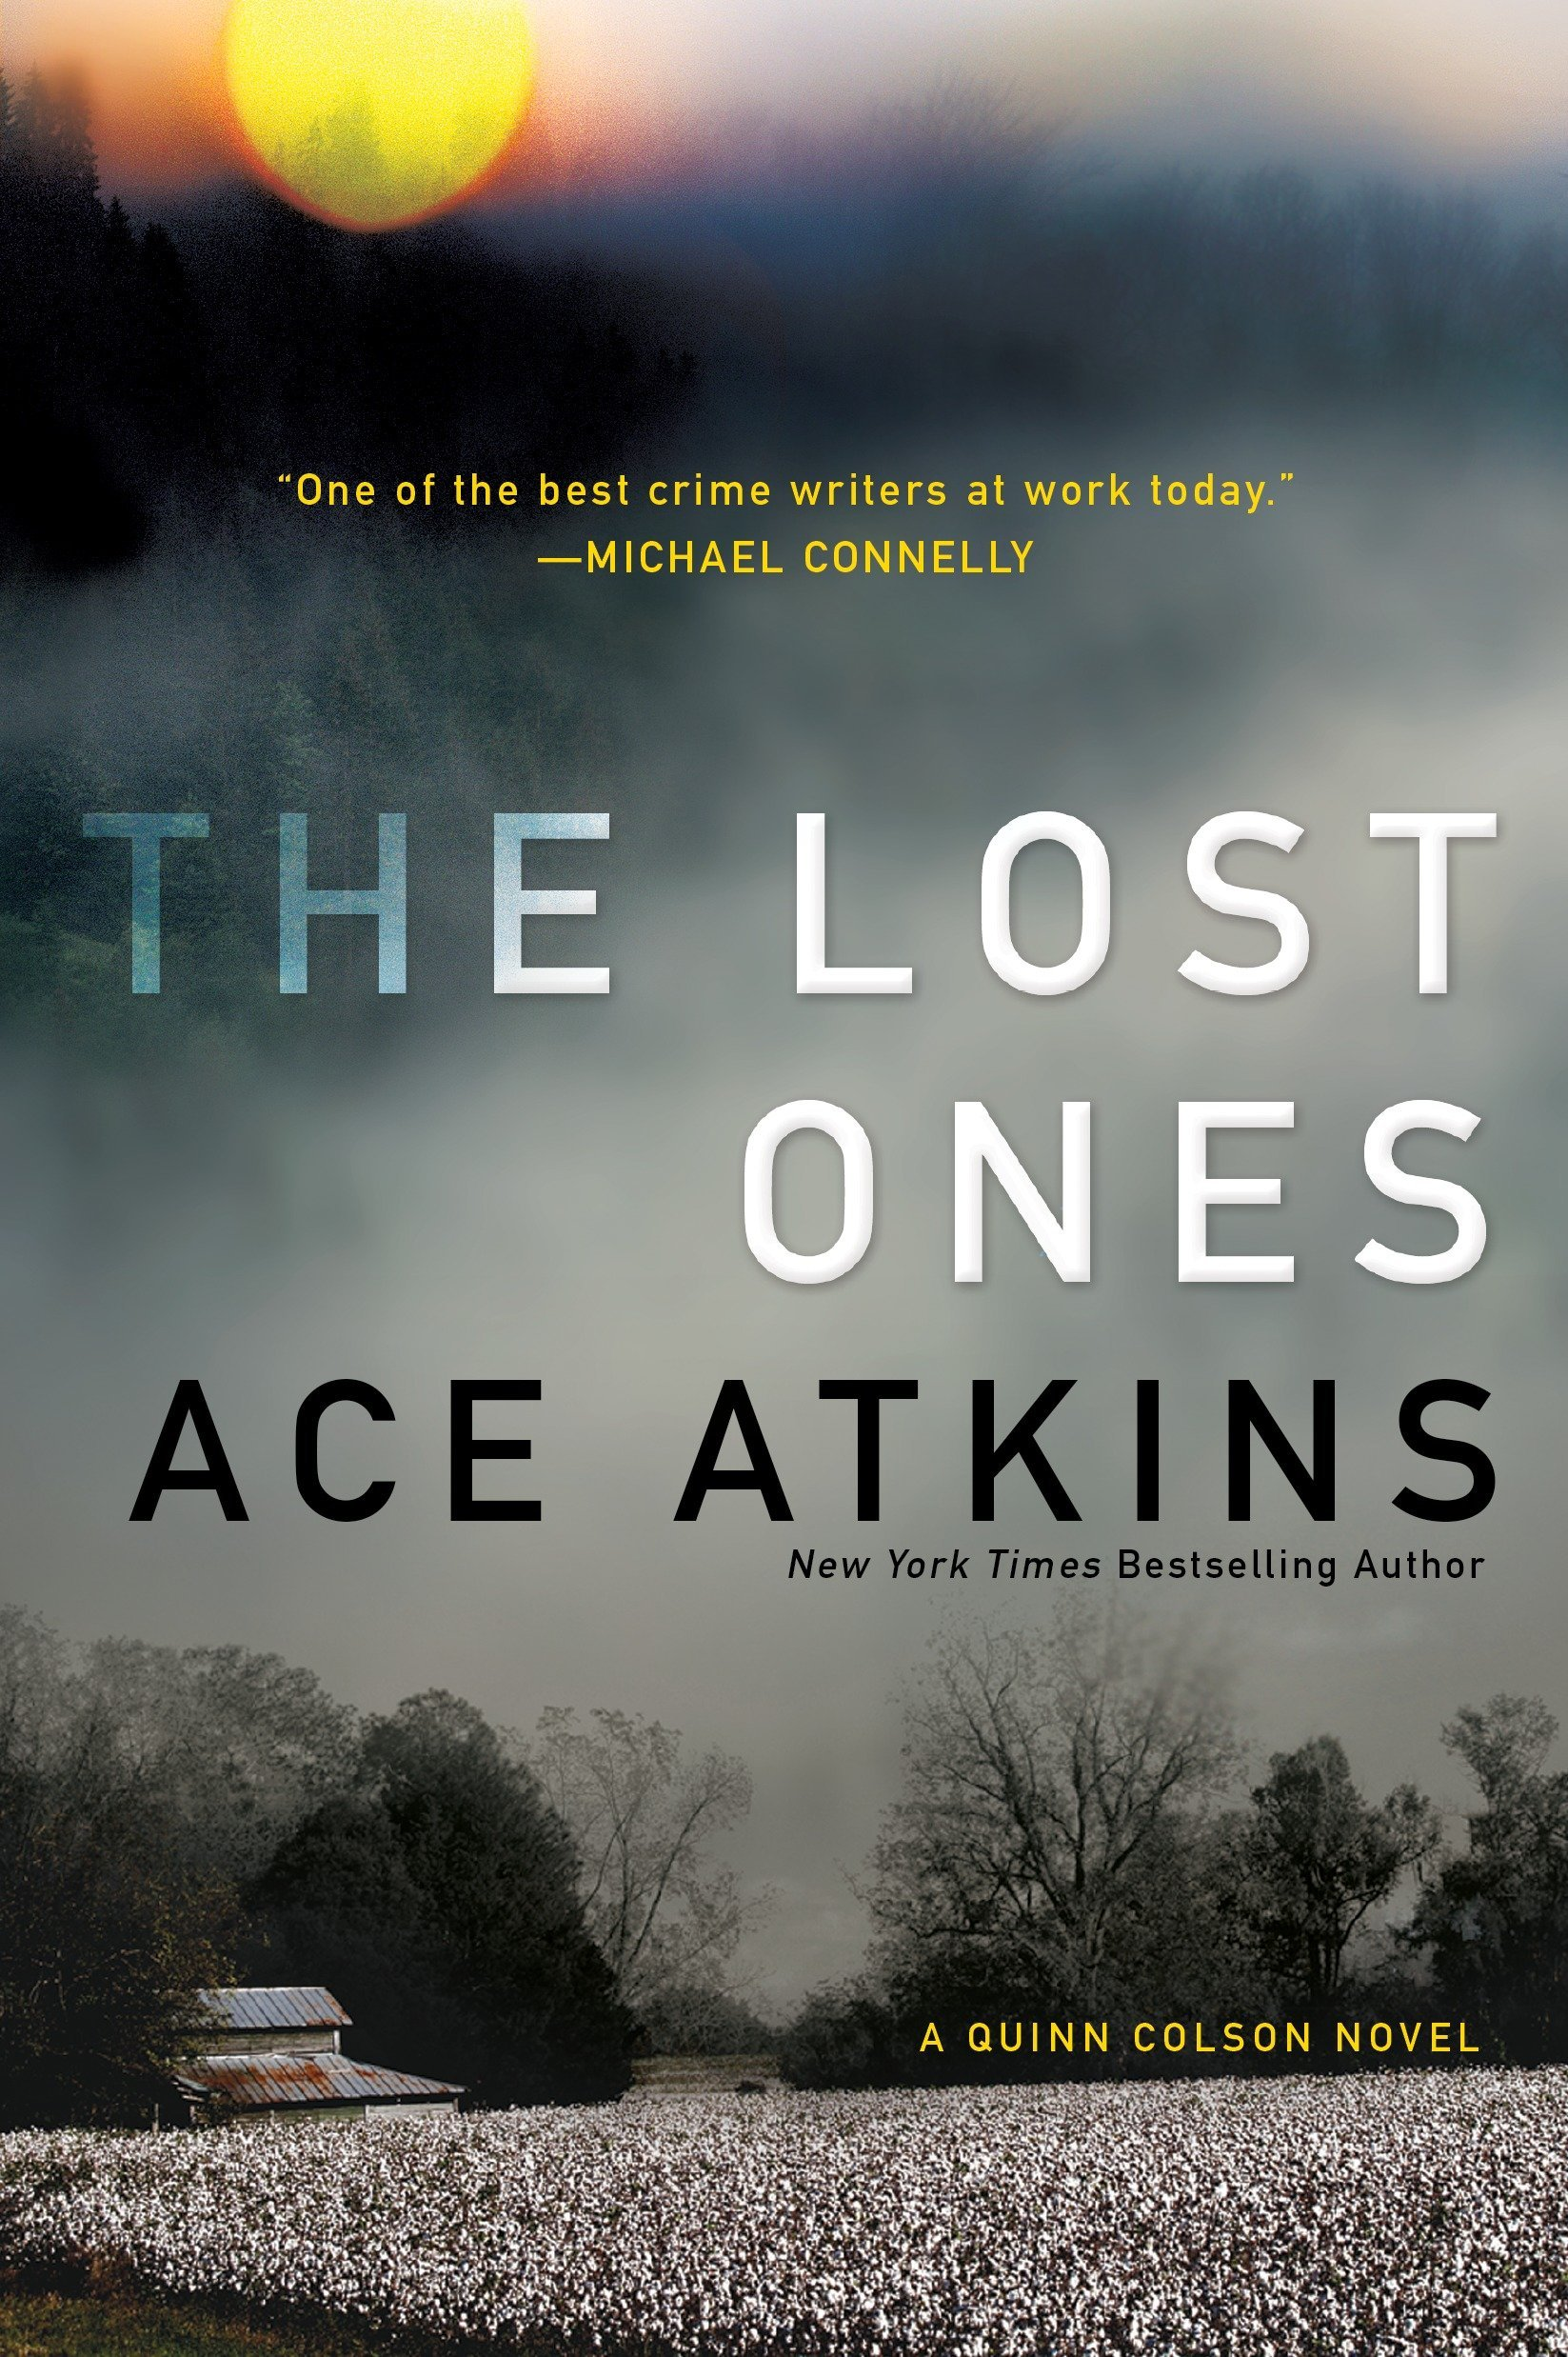 Amazon.com: The Lost Ones (A Quinn Colson Novel) (9780425258644): Ace Atkins:  Books